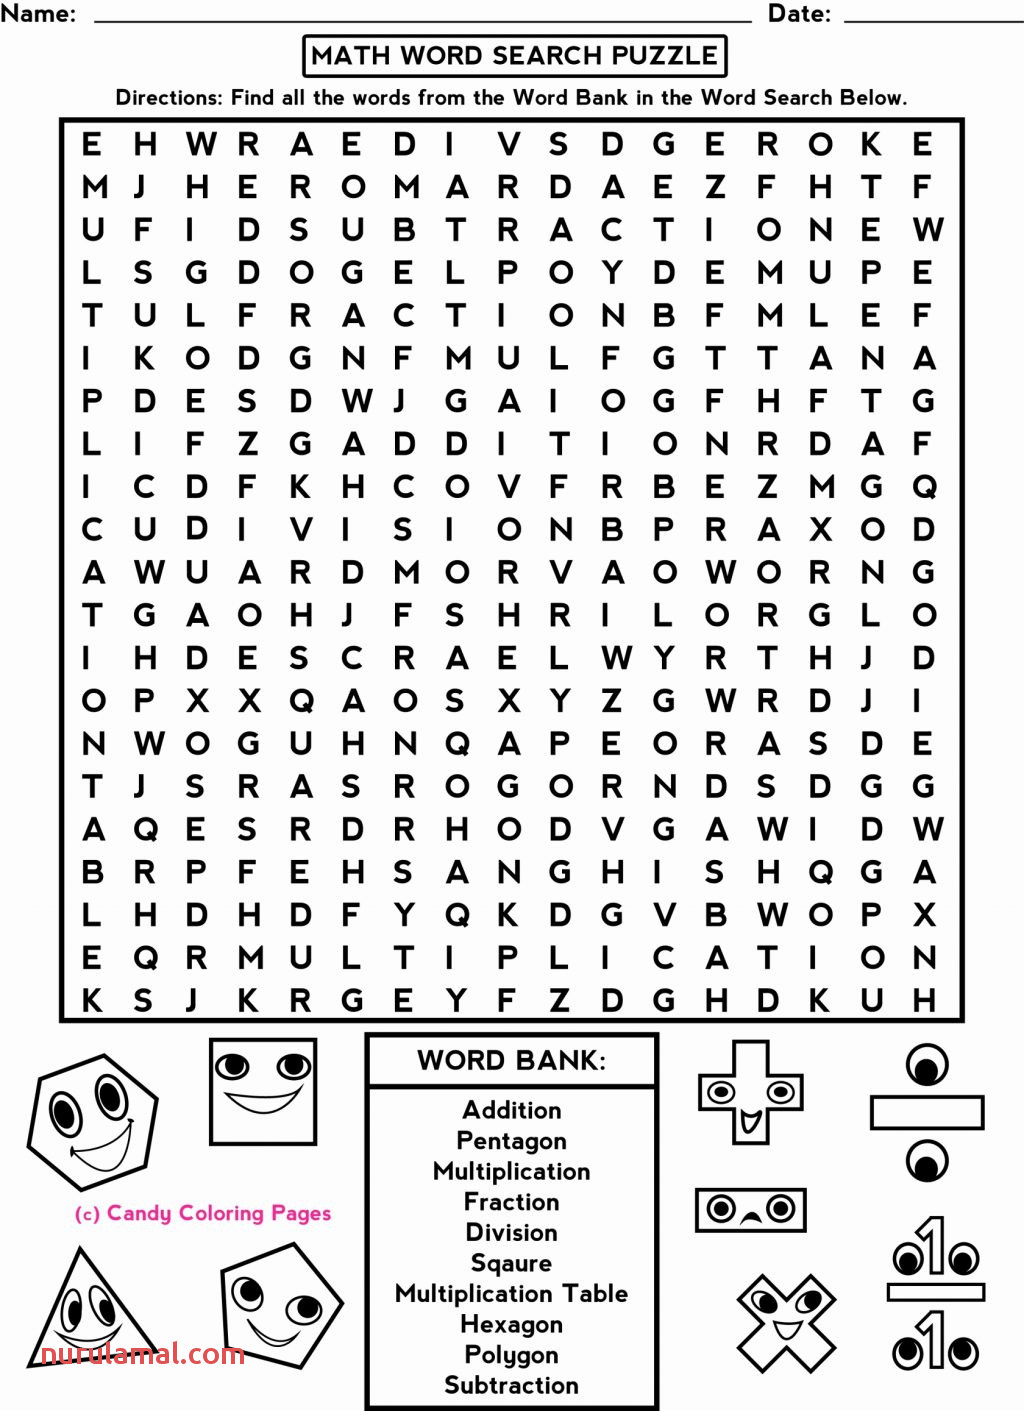 Fun Worksheets for 5th De Kids Printable Math Puzzles Game